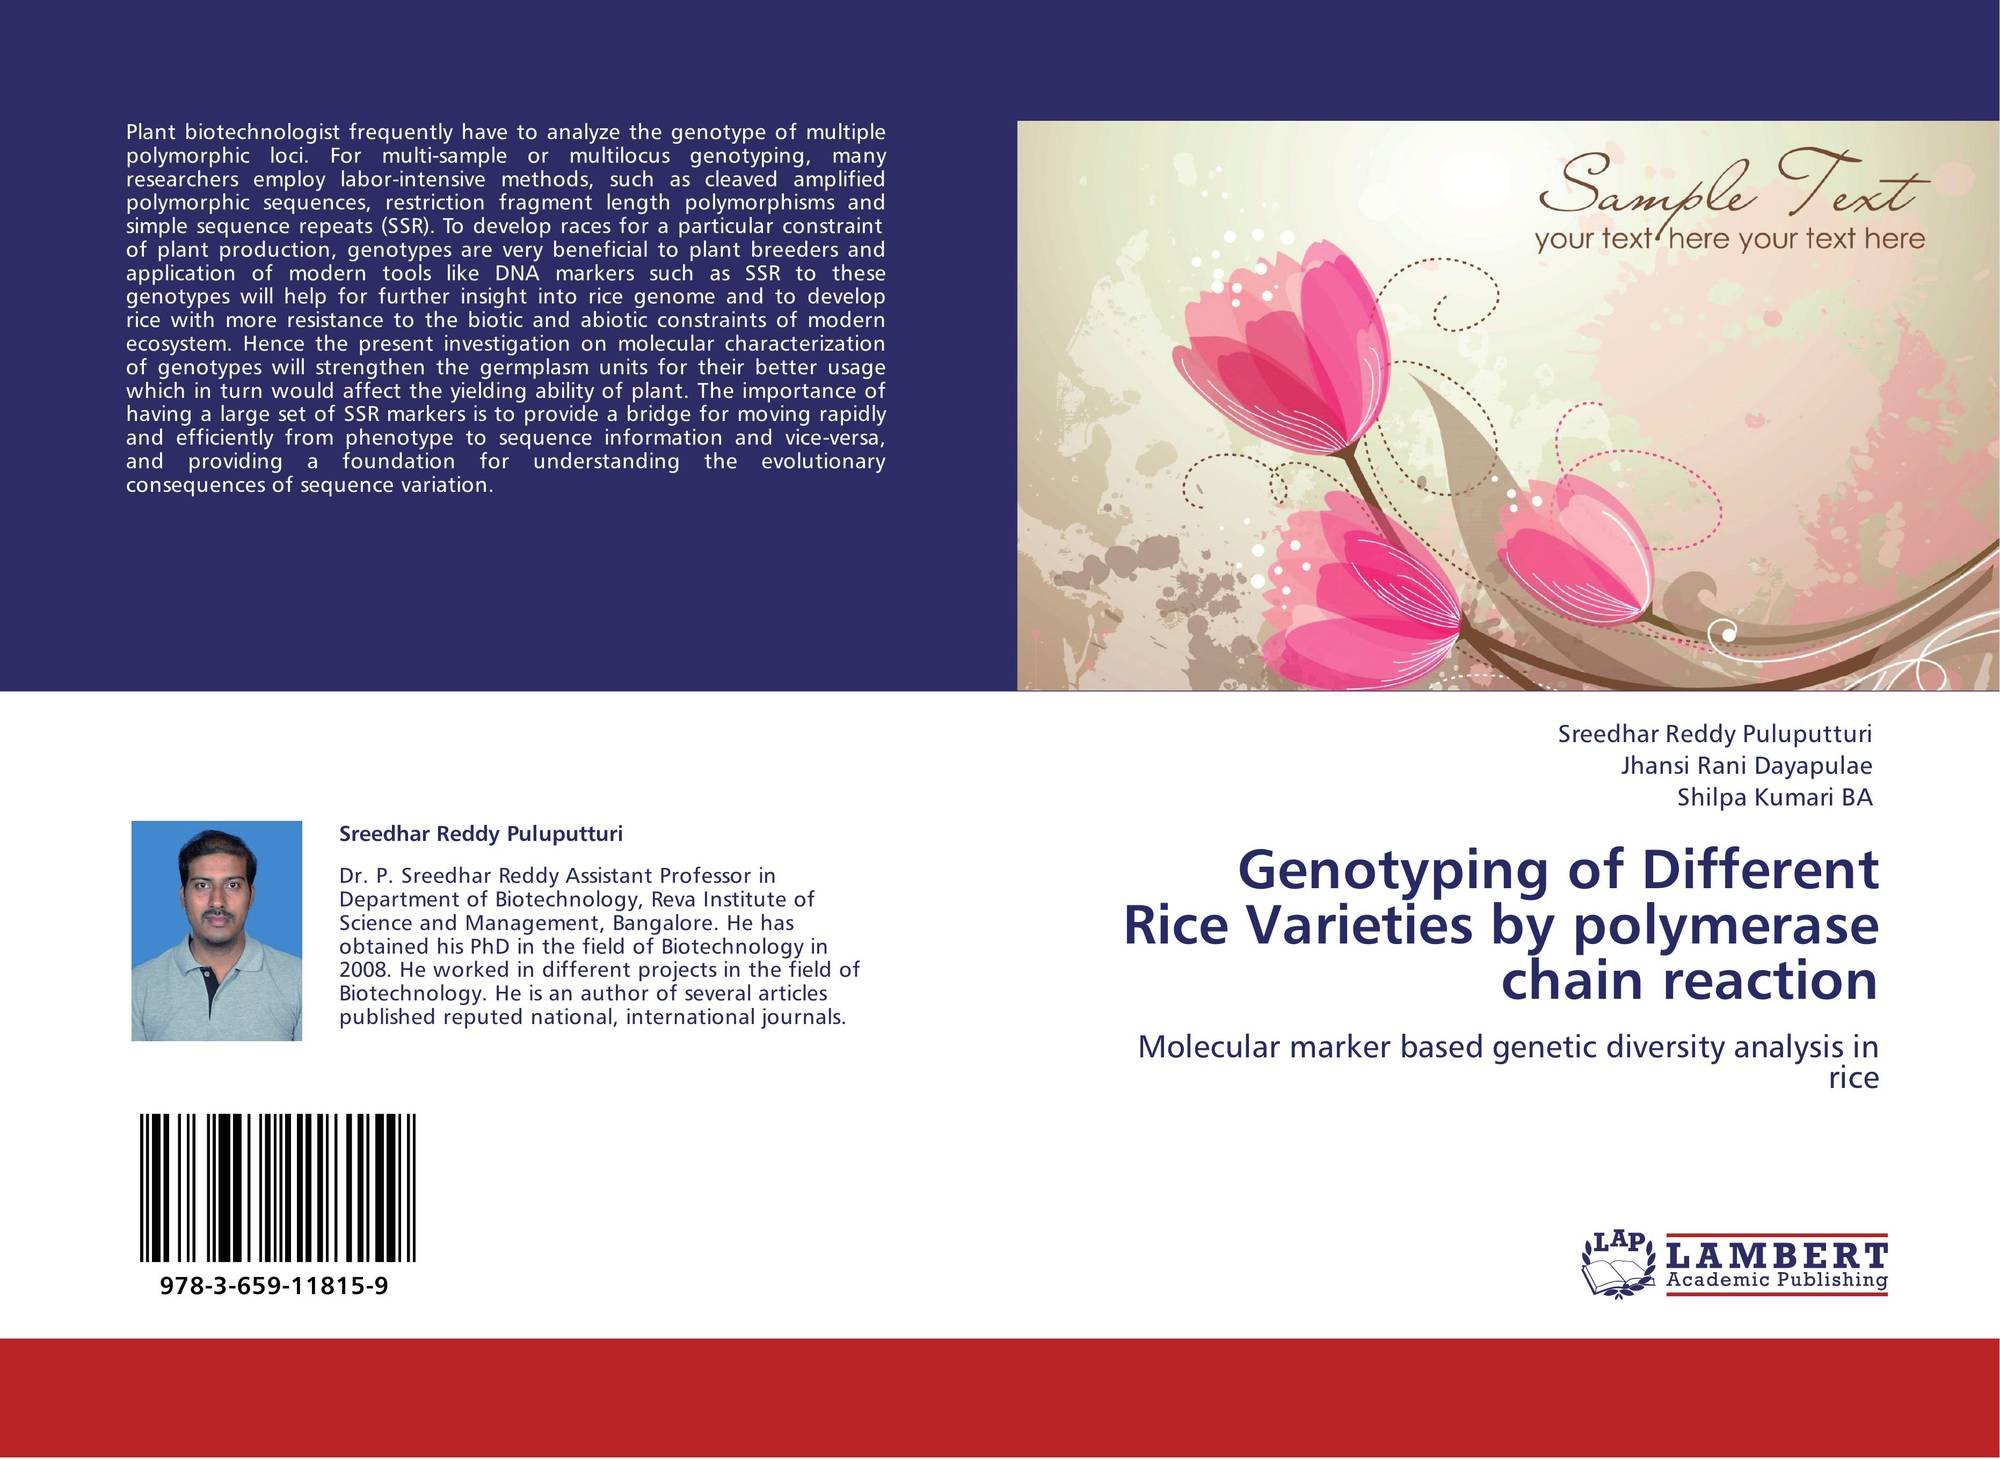 analysis of ssr sequences in rice An efficient strategy combining ssr markers for further analysis the genome sequences of 11 rice accessions analysis of simple sequence repeat.